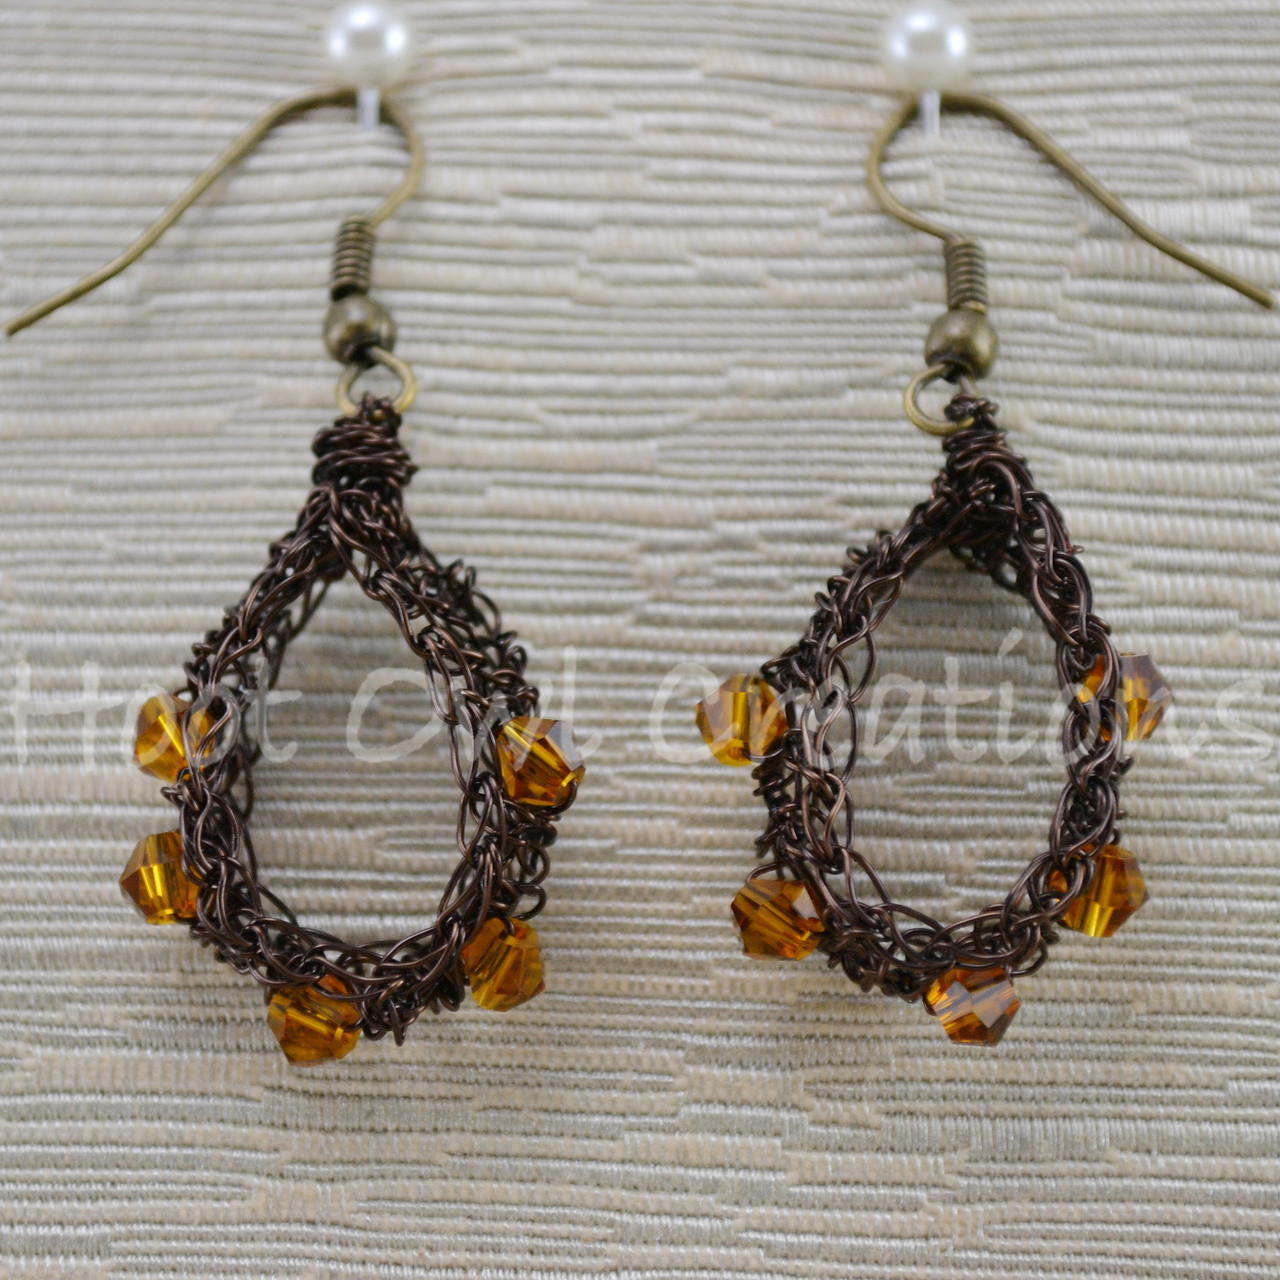 Wire Earrings - Page 1 - Hoot Owl Creations